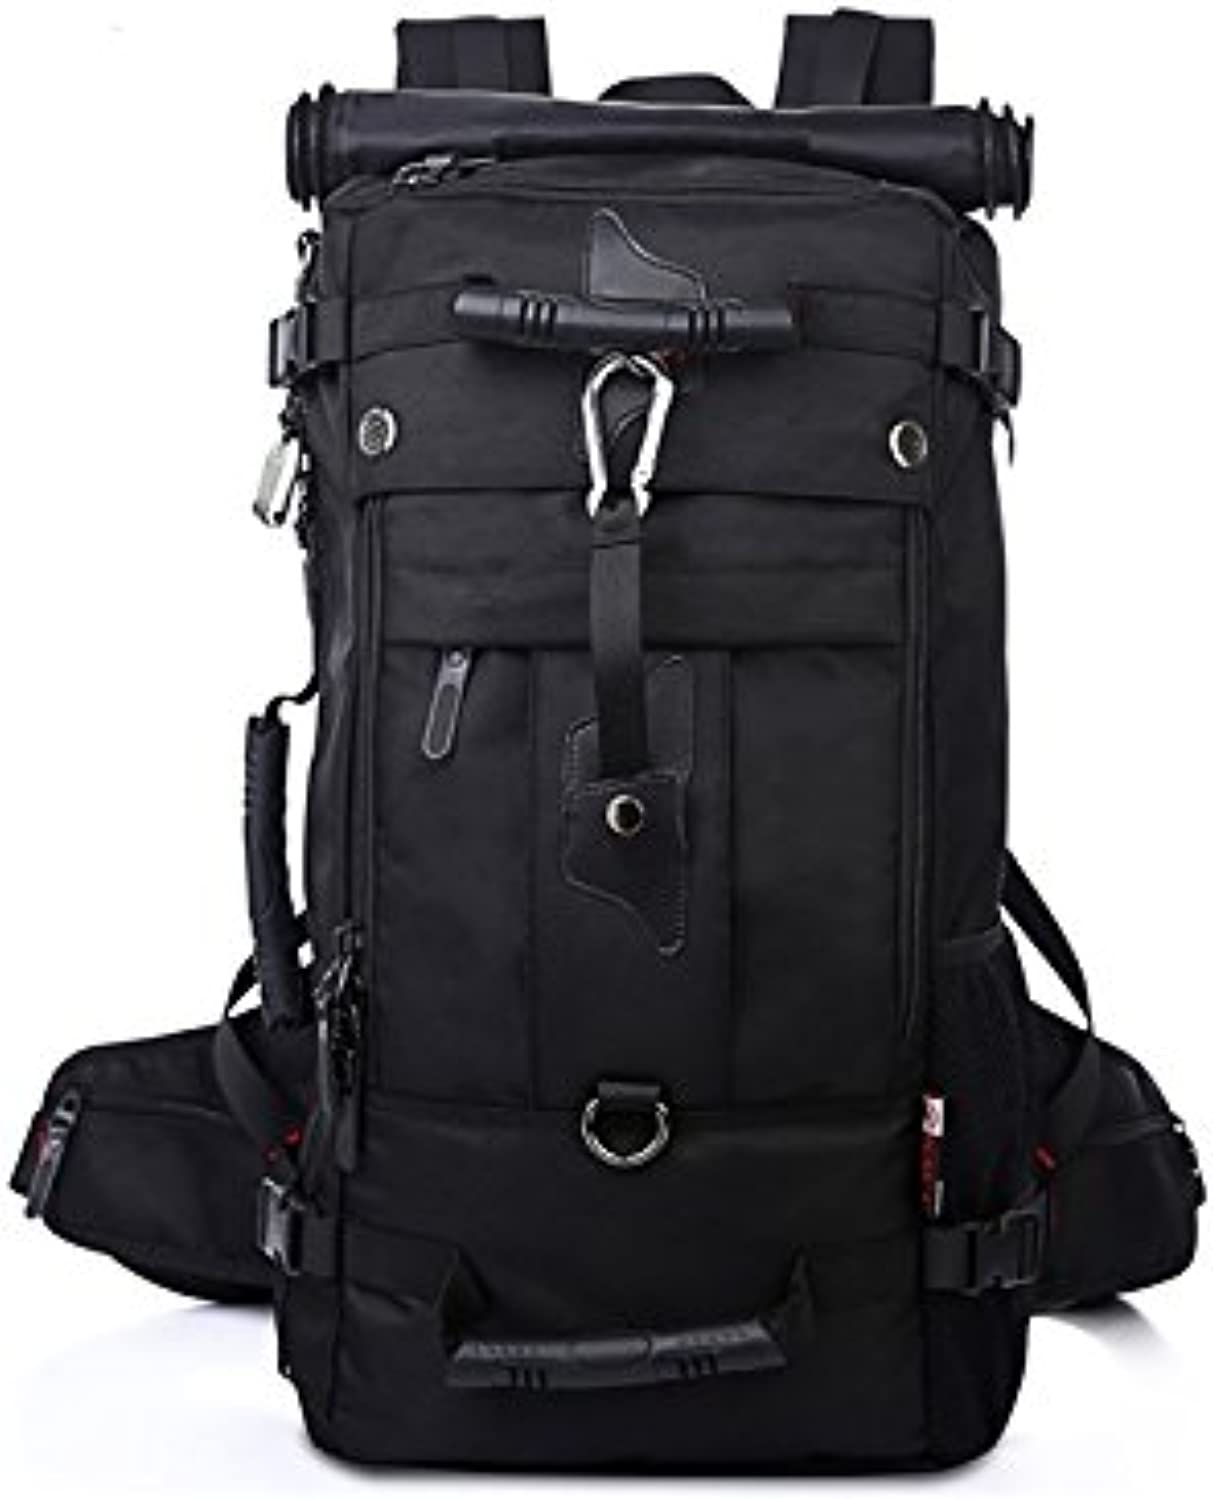 Outdoor Men's Outdoor Sports Oxford Cloth Multifunctional Waterproof Hiking Climbing Bag(Black) for Hiking